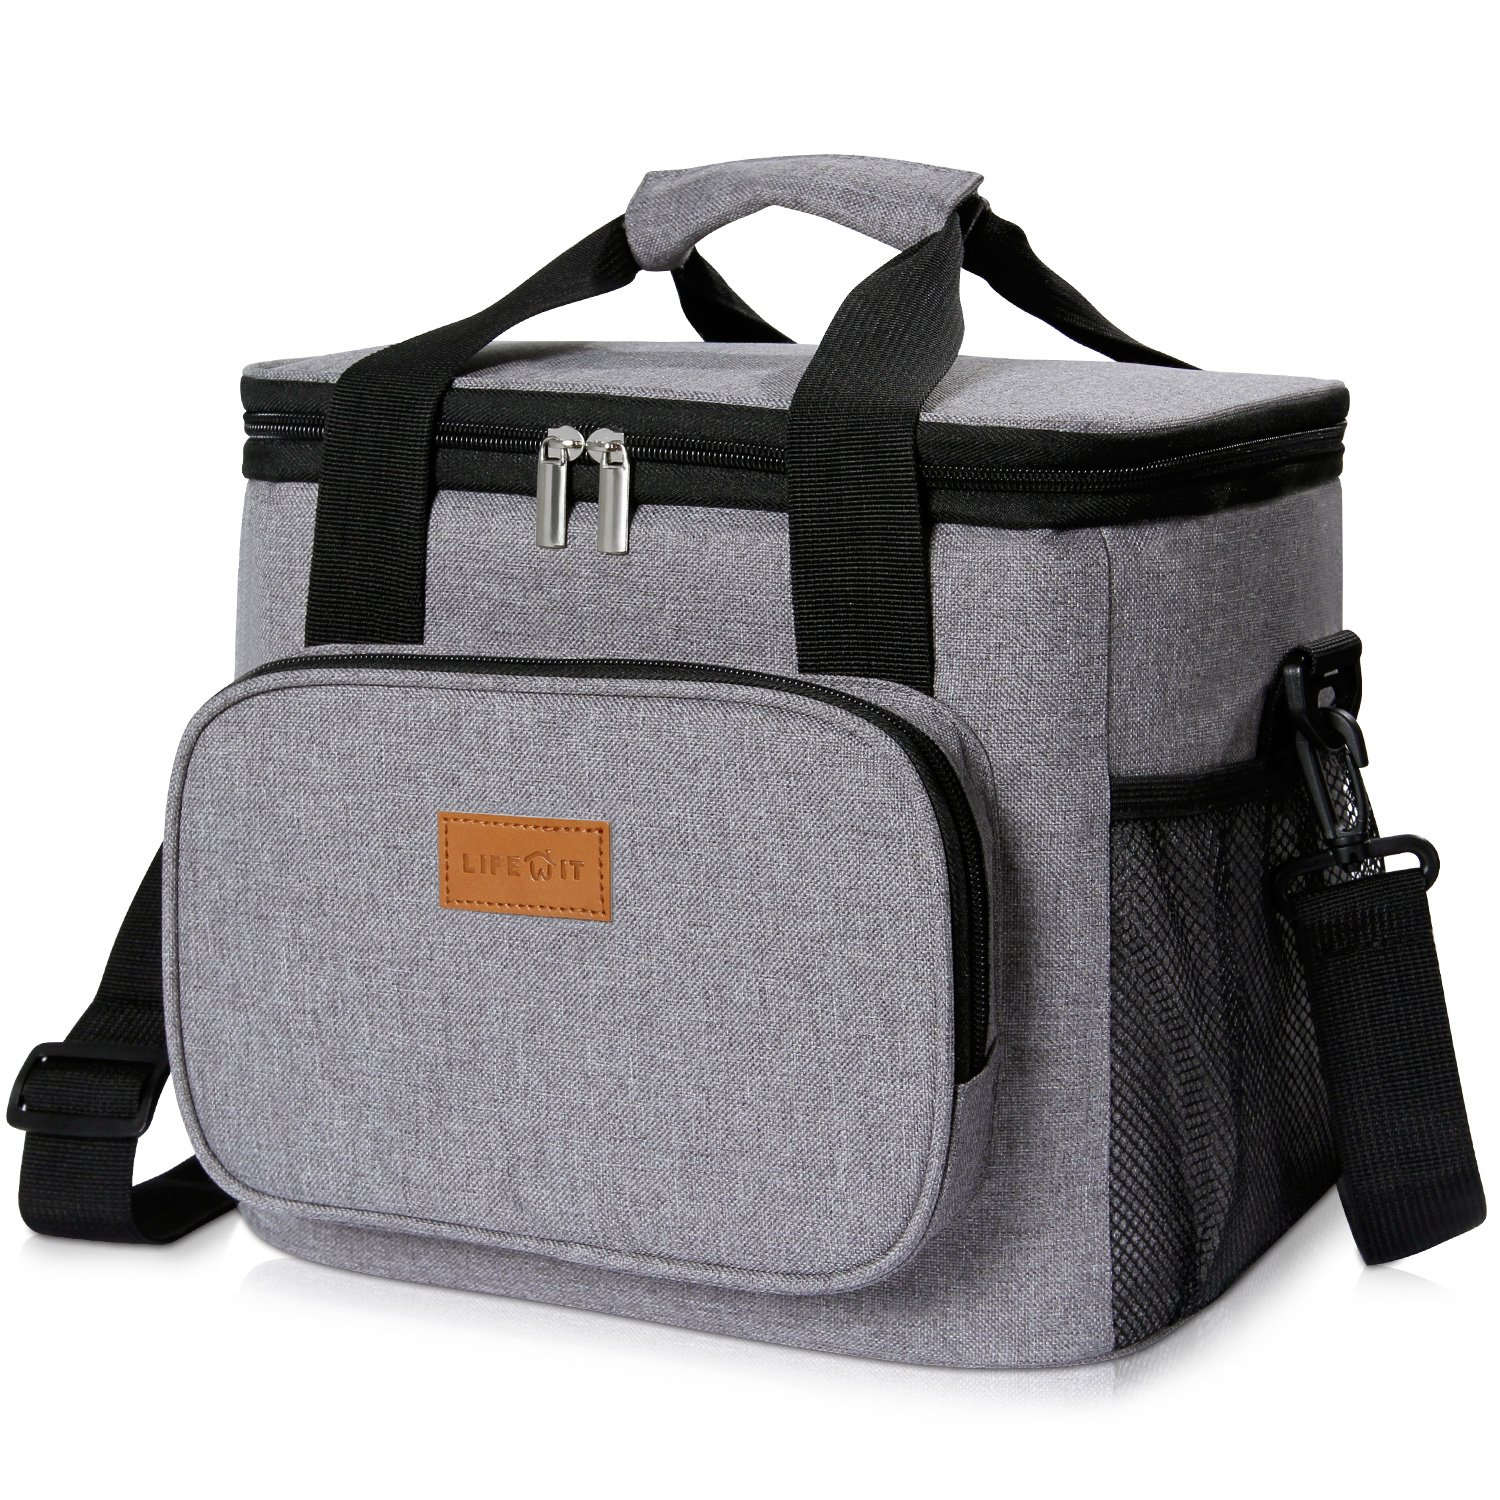 Lifewit Large Lunch Bag Insulated Lunch Box Soft Cooler Cooling Tote for Adult Men Women, 24-Can (15L), Grey by Lifewit